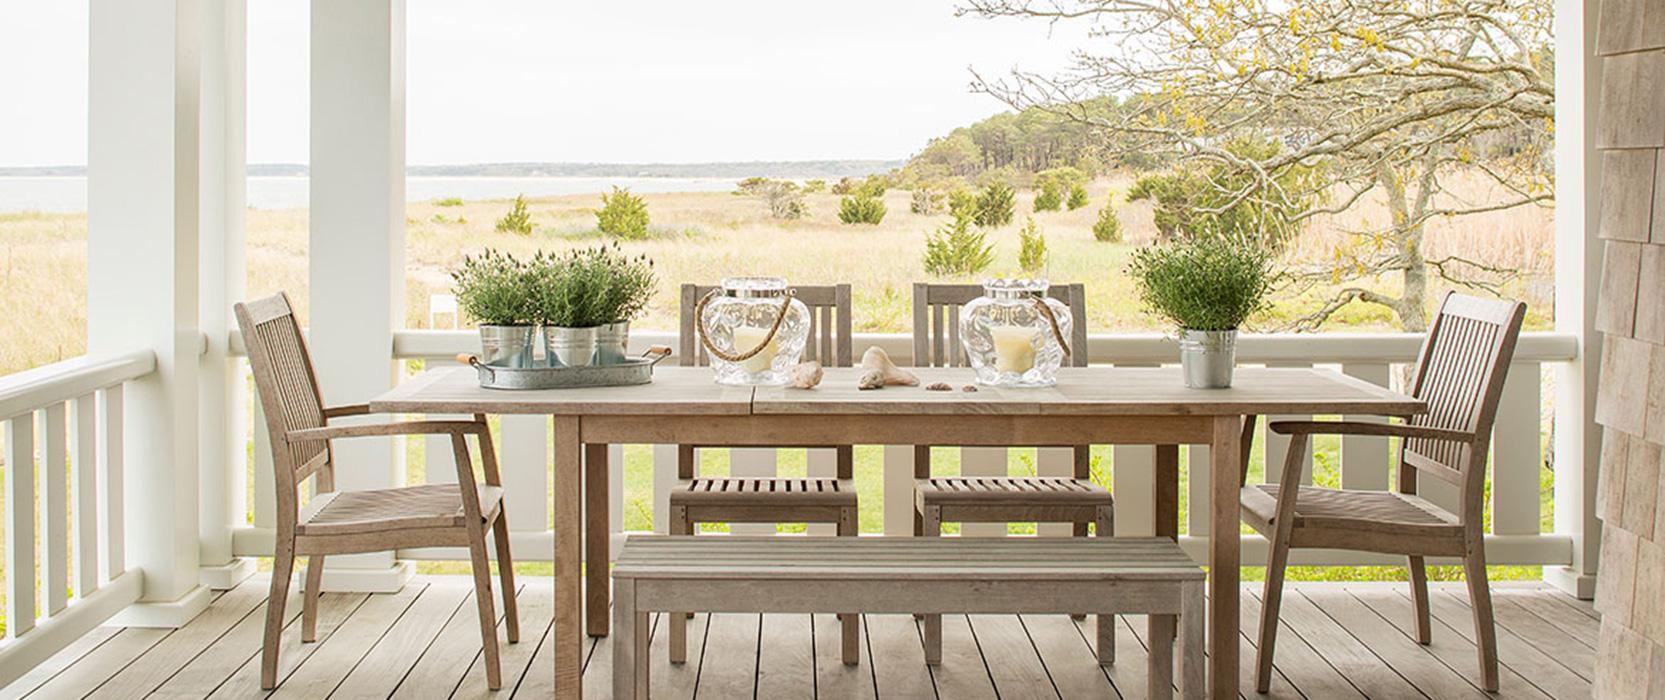 dining table on porch overlooking the marsh and ocean